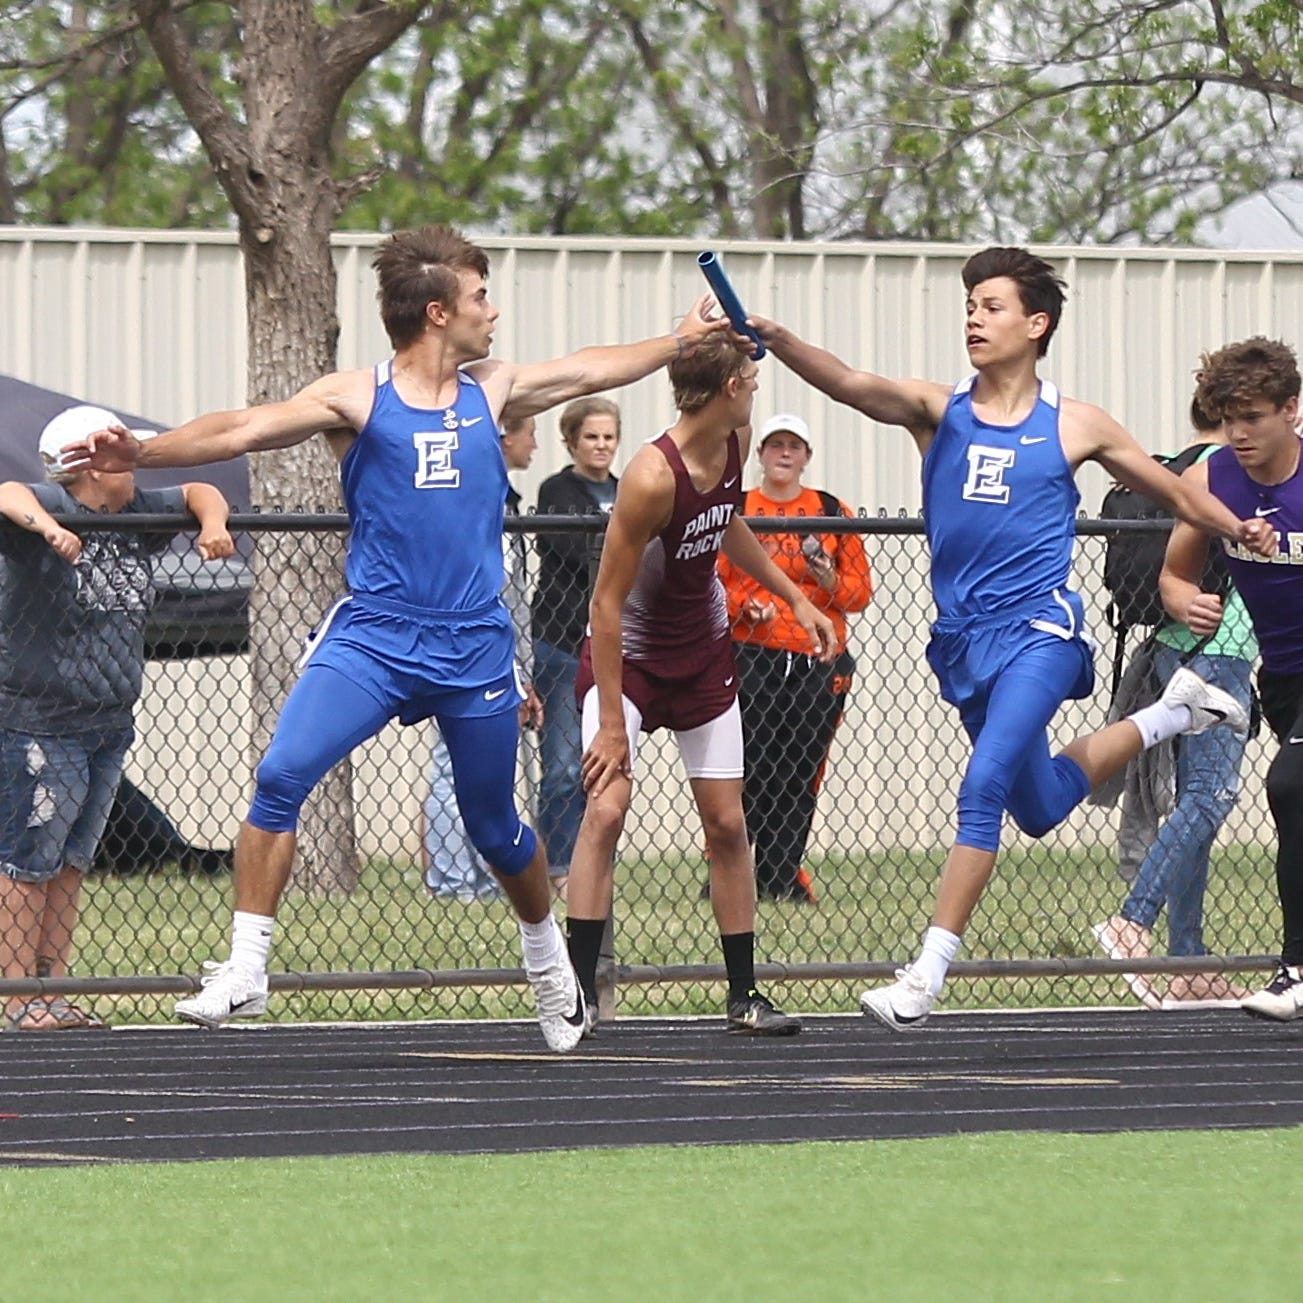 REGIONAL TRACK PREVIEW: Eden boys want to erase memories of 2018